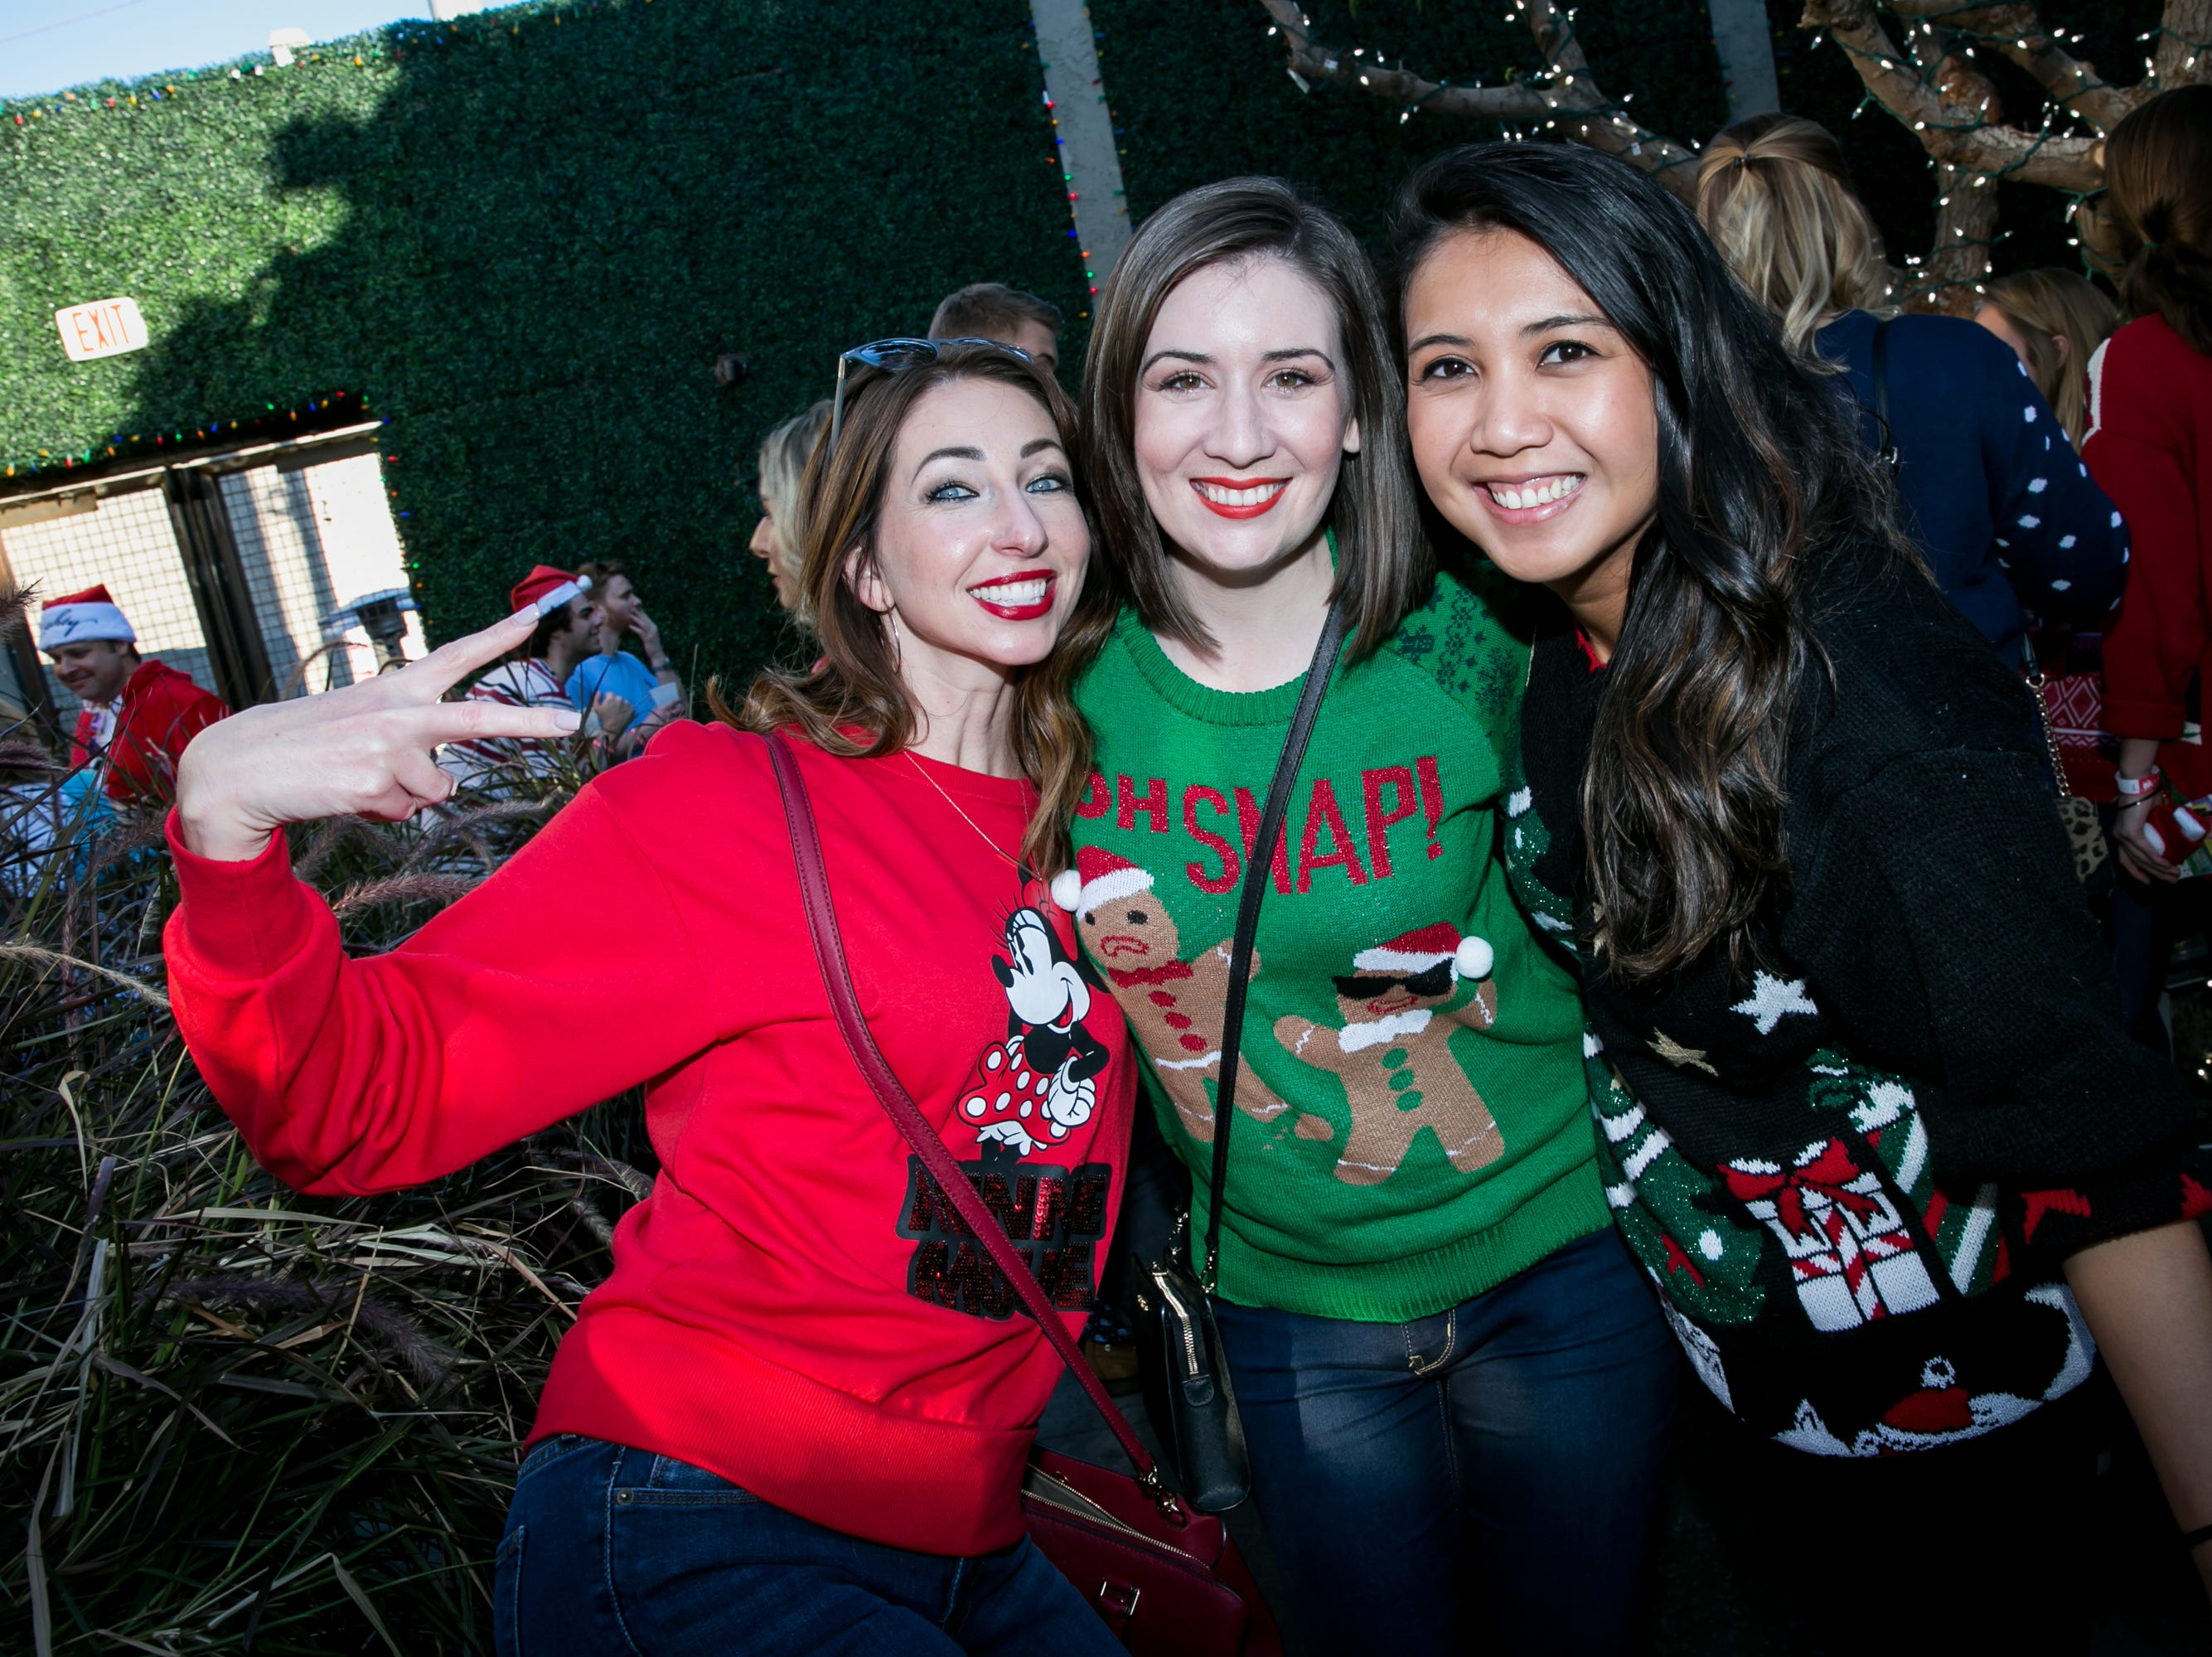 Her gingerbread man sweater was perfect during the Scottsdale Santa Crawl at Wasted Grain on Saturday, December 8, 2018.